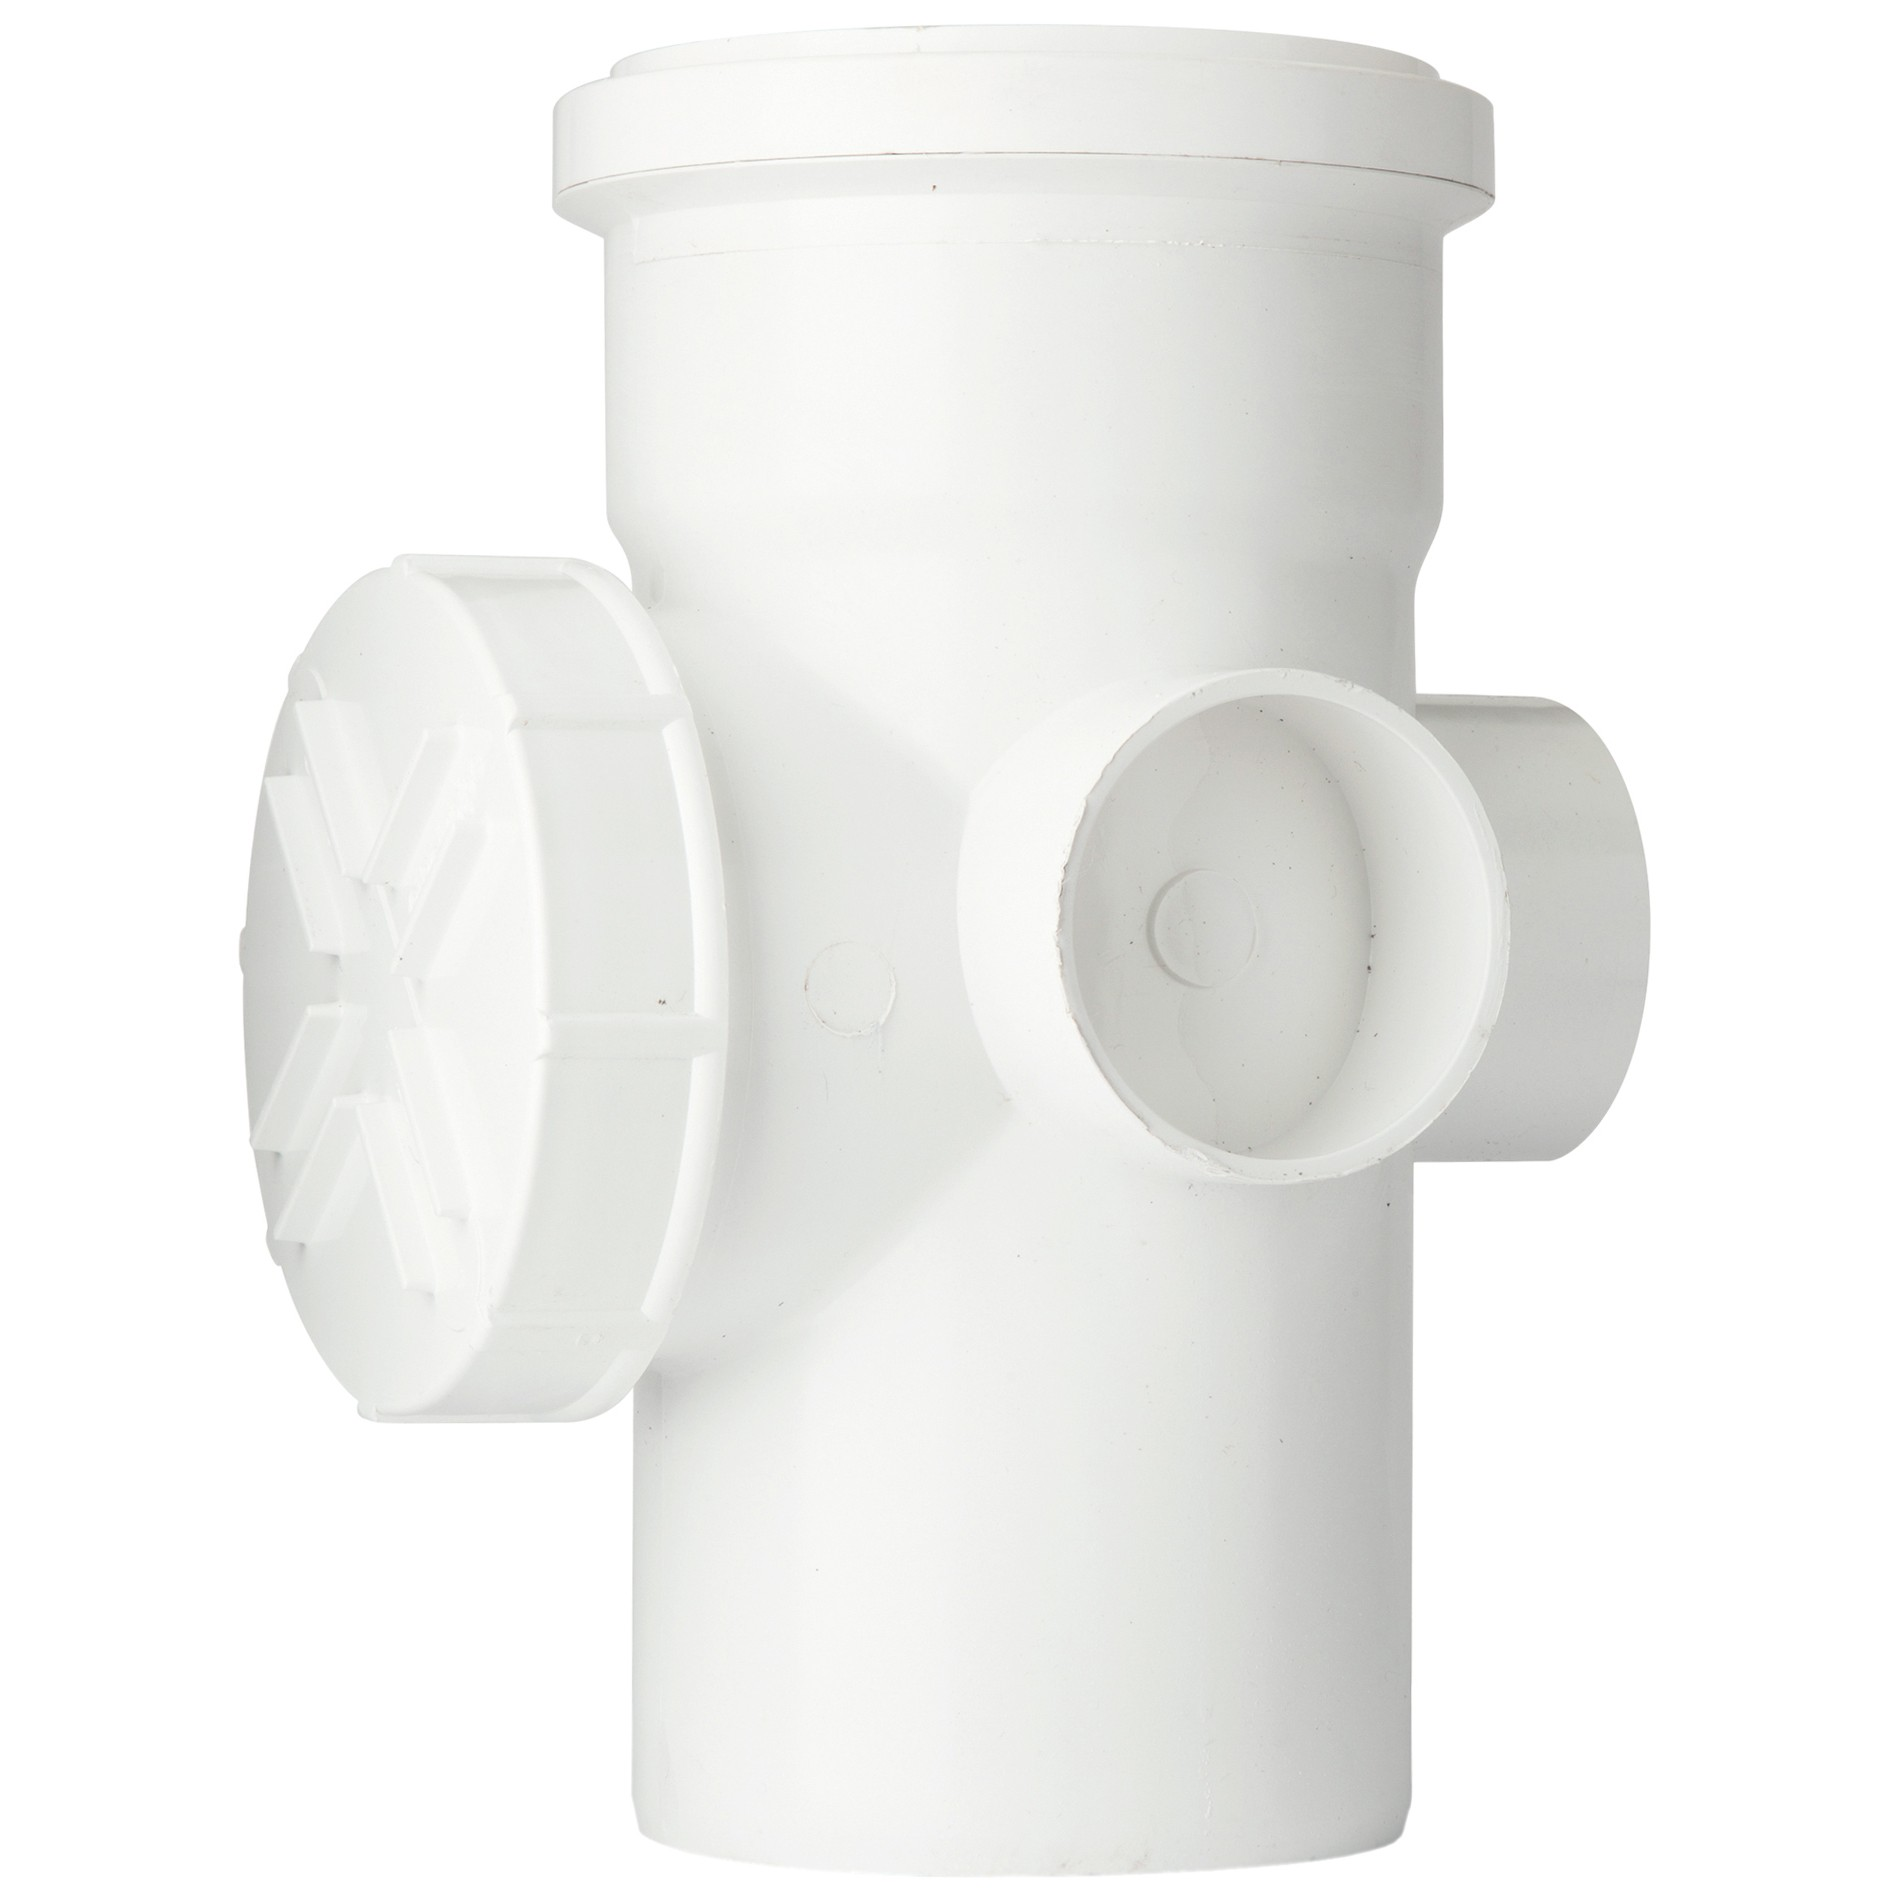 Polypipe 110mm Soil Single Socket Access Pipe - White